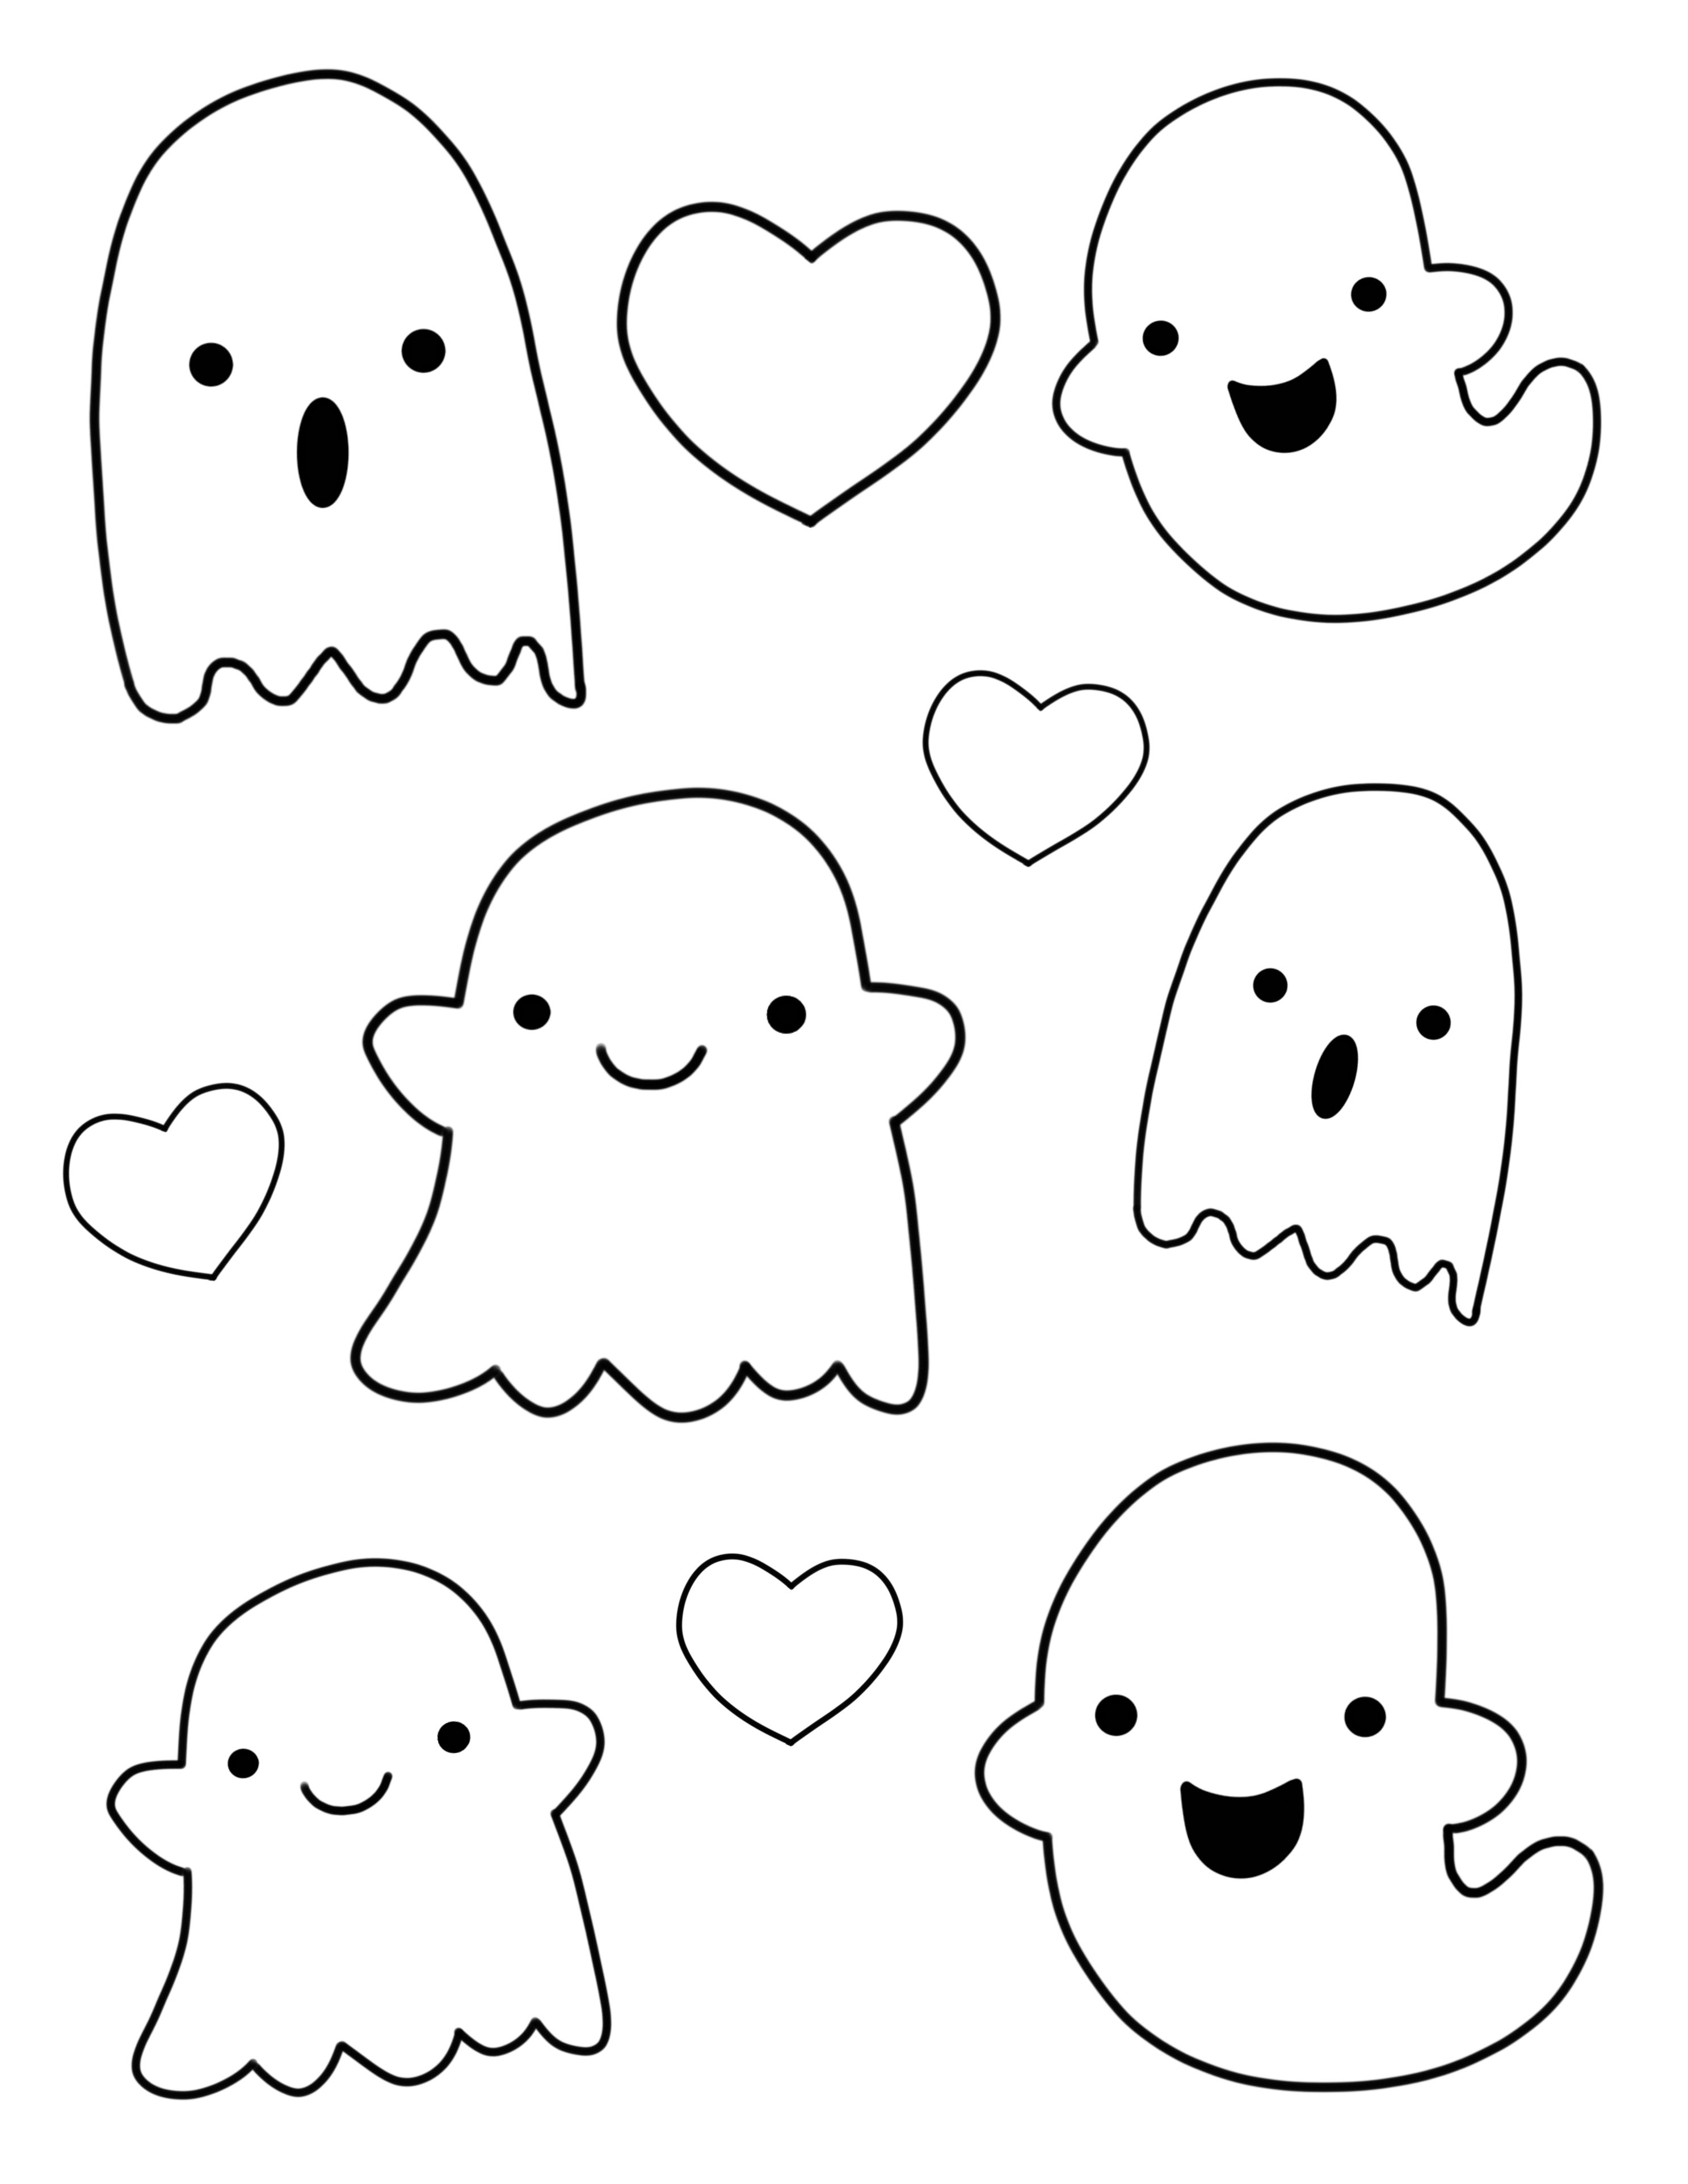 Tumblr With Images Easy Drawings Cute Drawings Tumblr